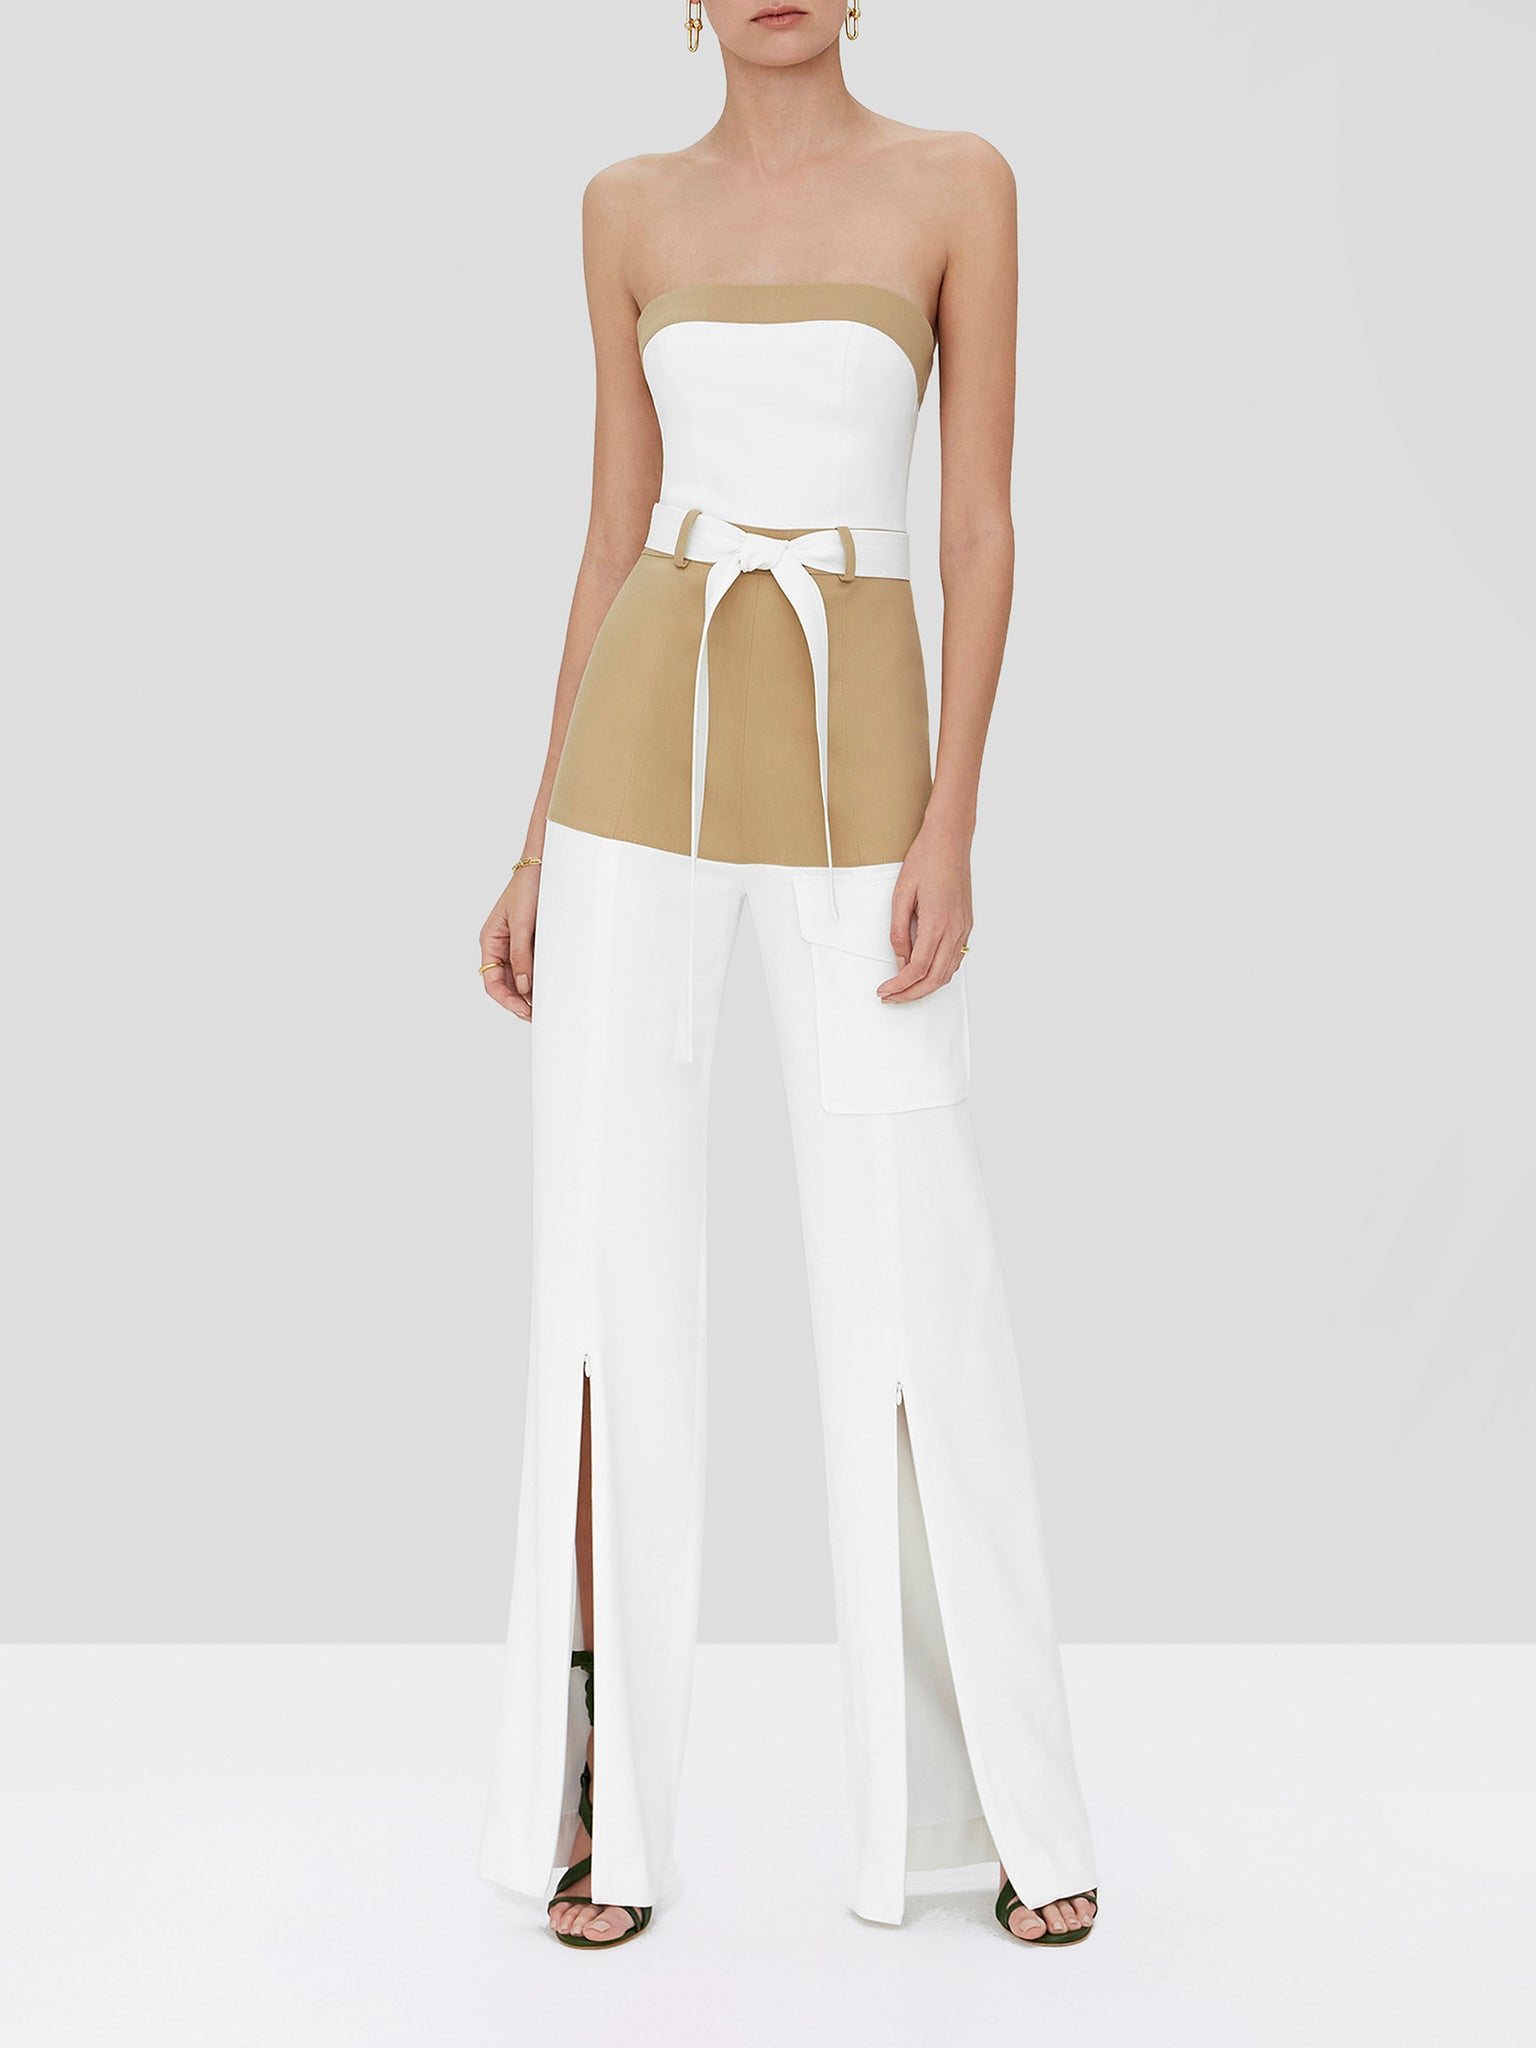 perrin jumpsuit in tan/white